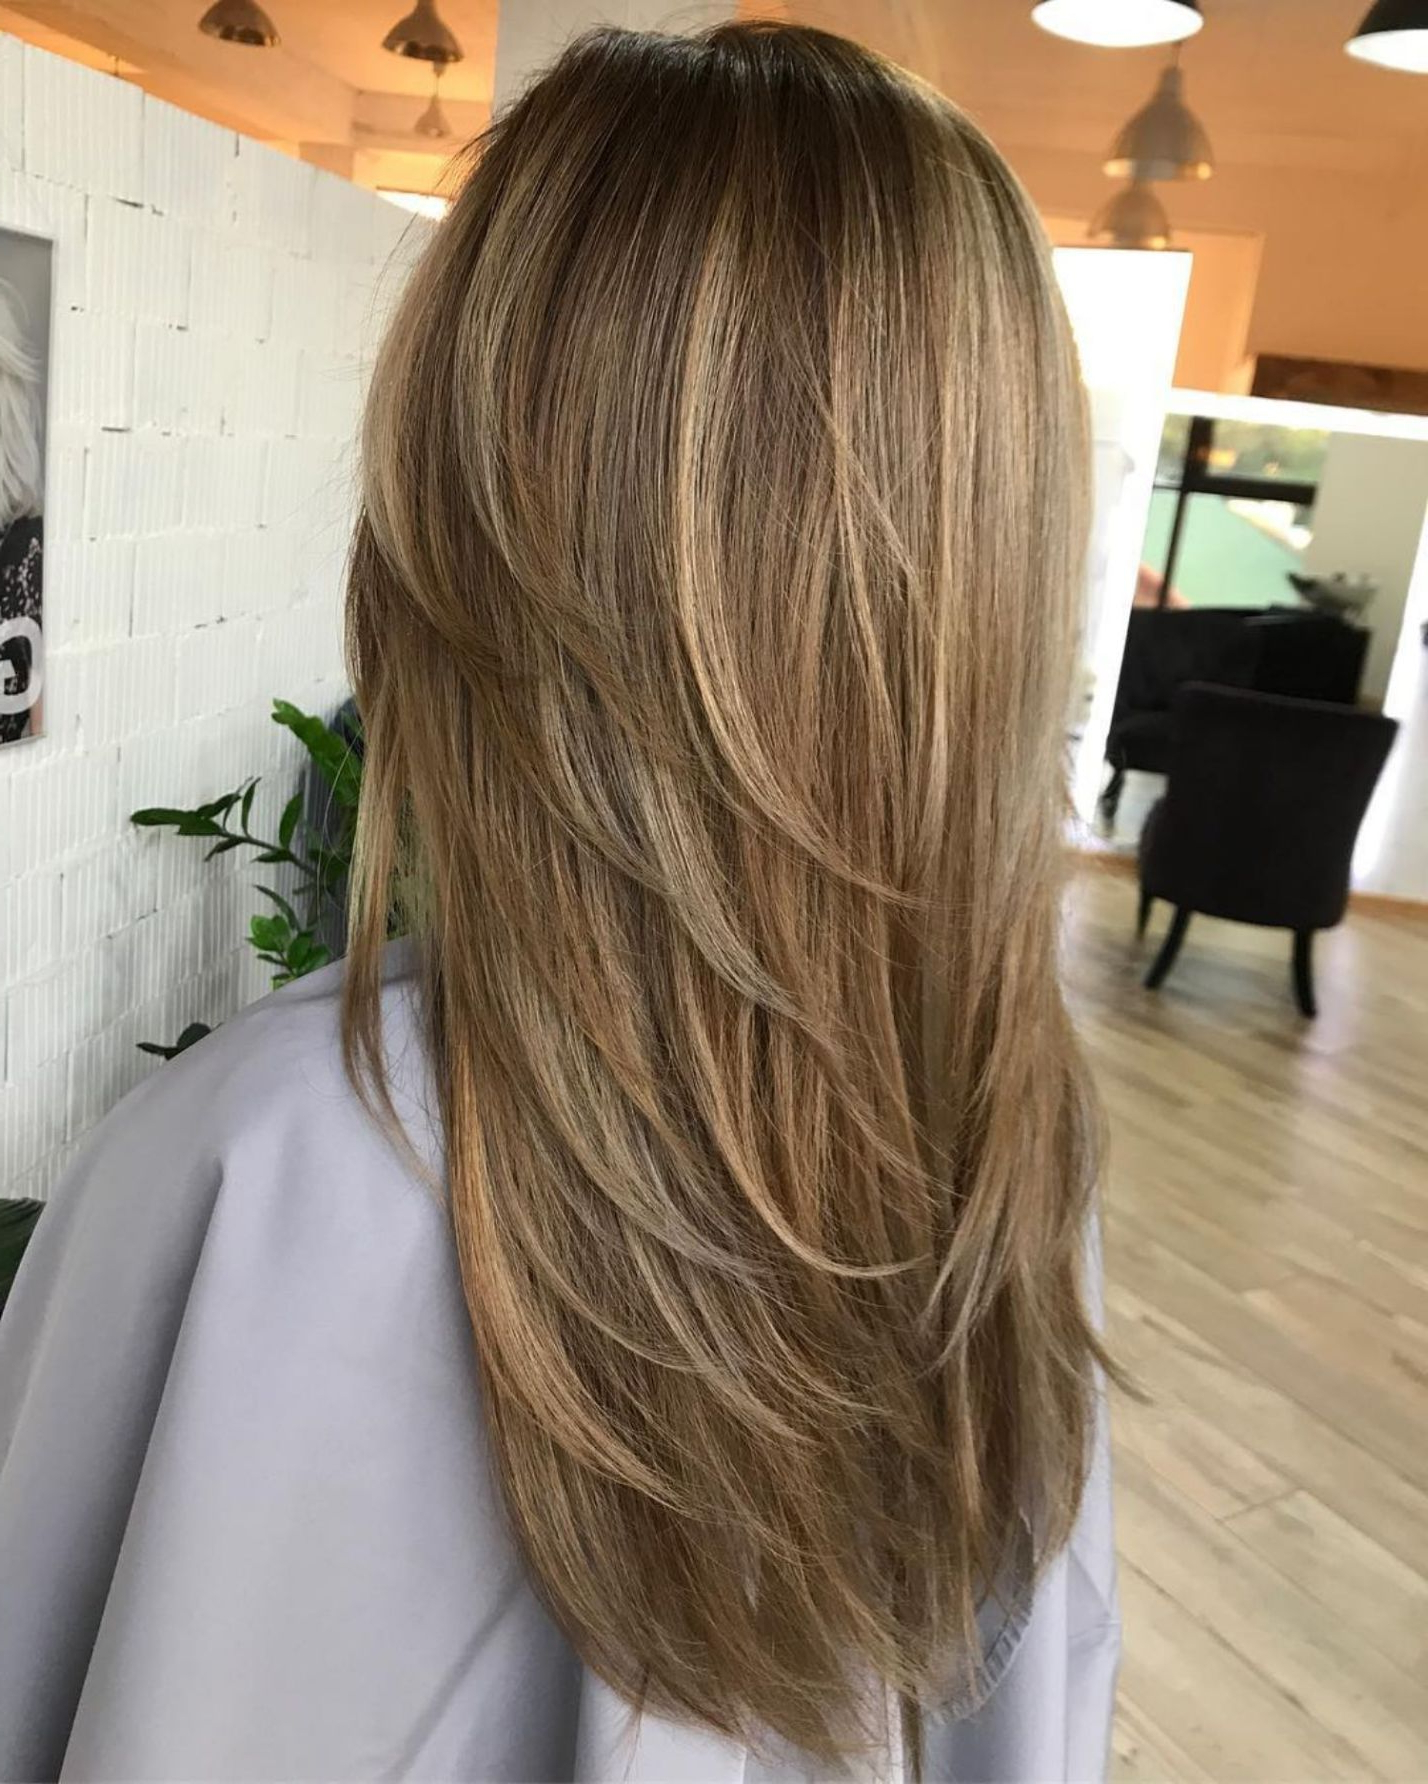 Famous Straight Layered Hairstyles With Twisted Top With Regard To 80 Cute Layered Hairstyles And Cuts For Long Hair (View 14 of 20)